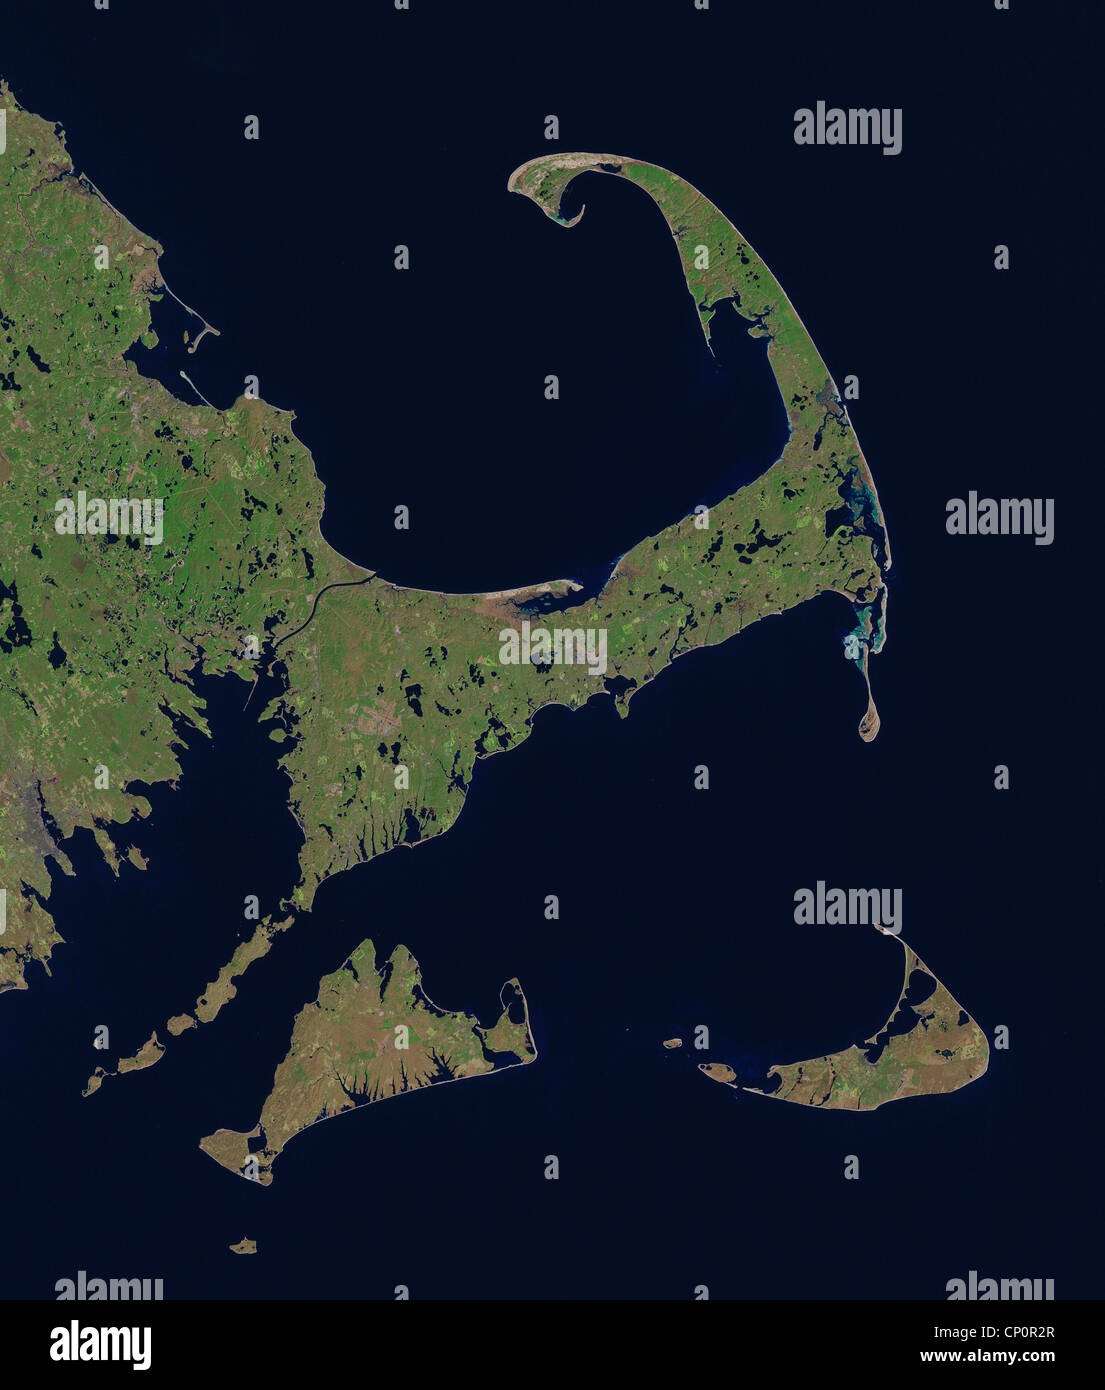 satellite image of Cape Cod, Martha's Vineyard, Nantucket ... on map of ships at sea, map of planes, map of towers, map of astronomy, map of nukes, map of media, map of servers, map of data, map of meteorites, map of aviation, map of physical, map of black holes, map of sun, map of environment, map of solar, map of maps, map of the electrical grid, map of sensors, map of electronics, map of cell phones,